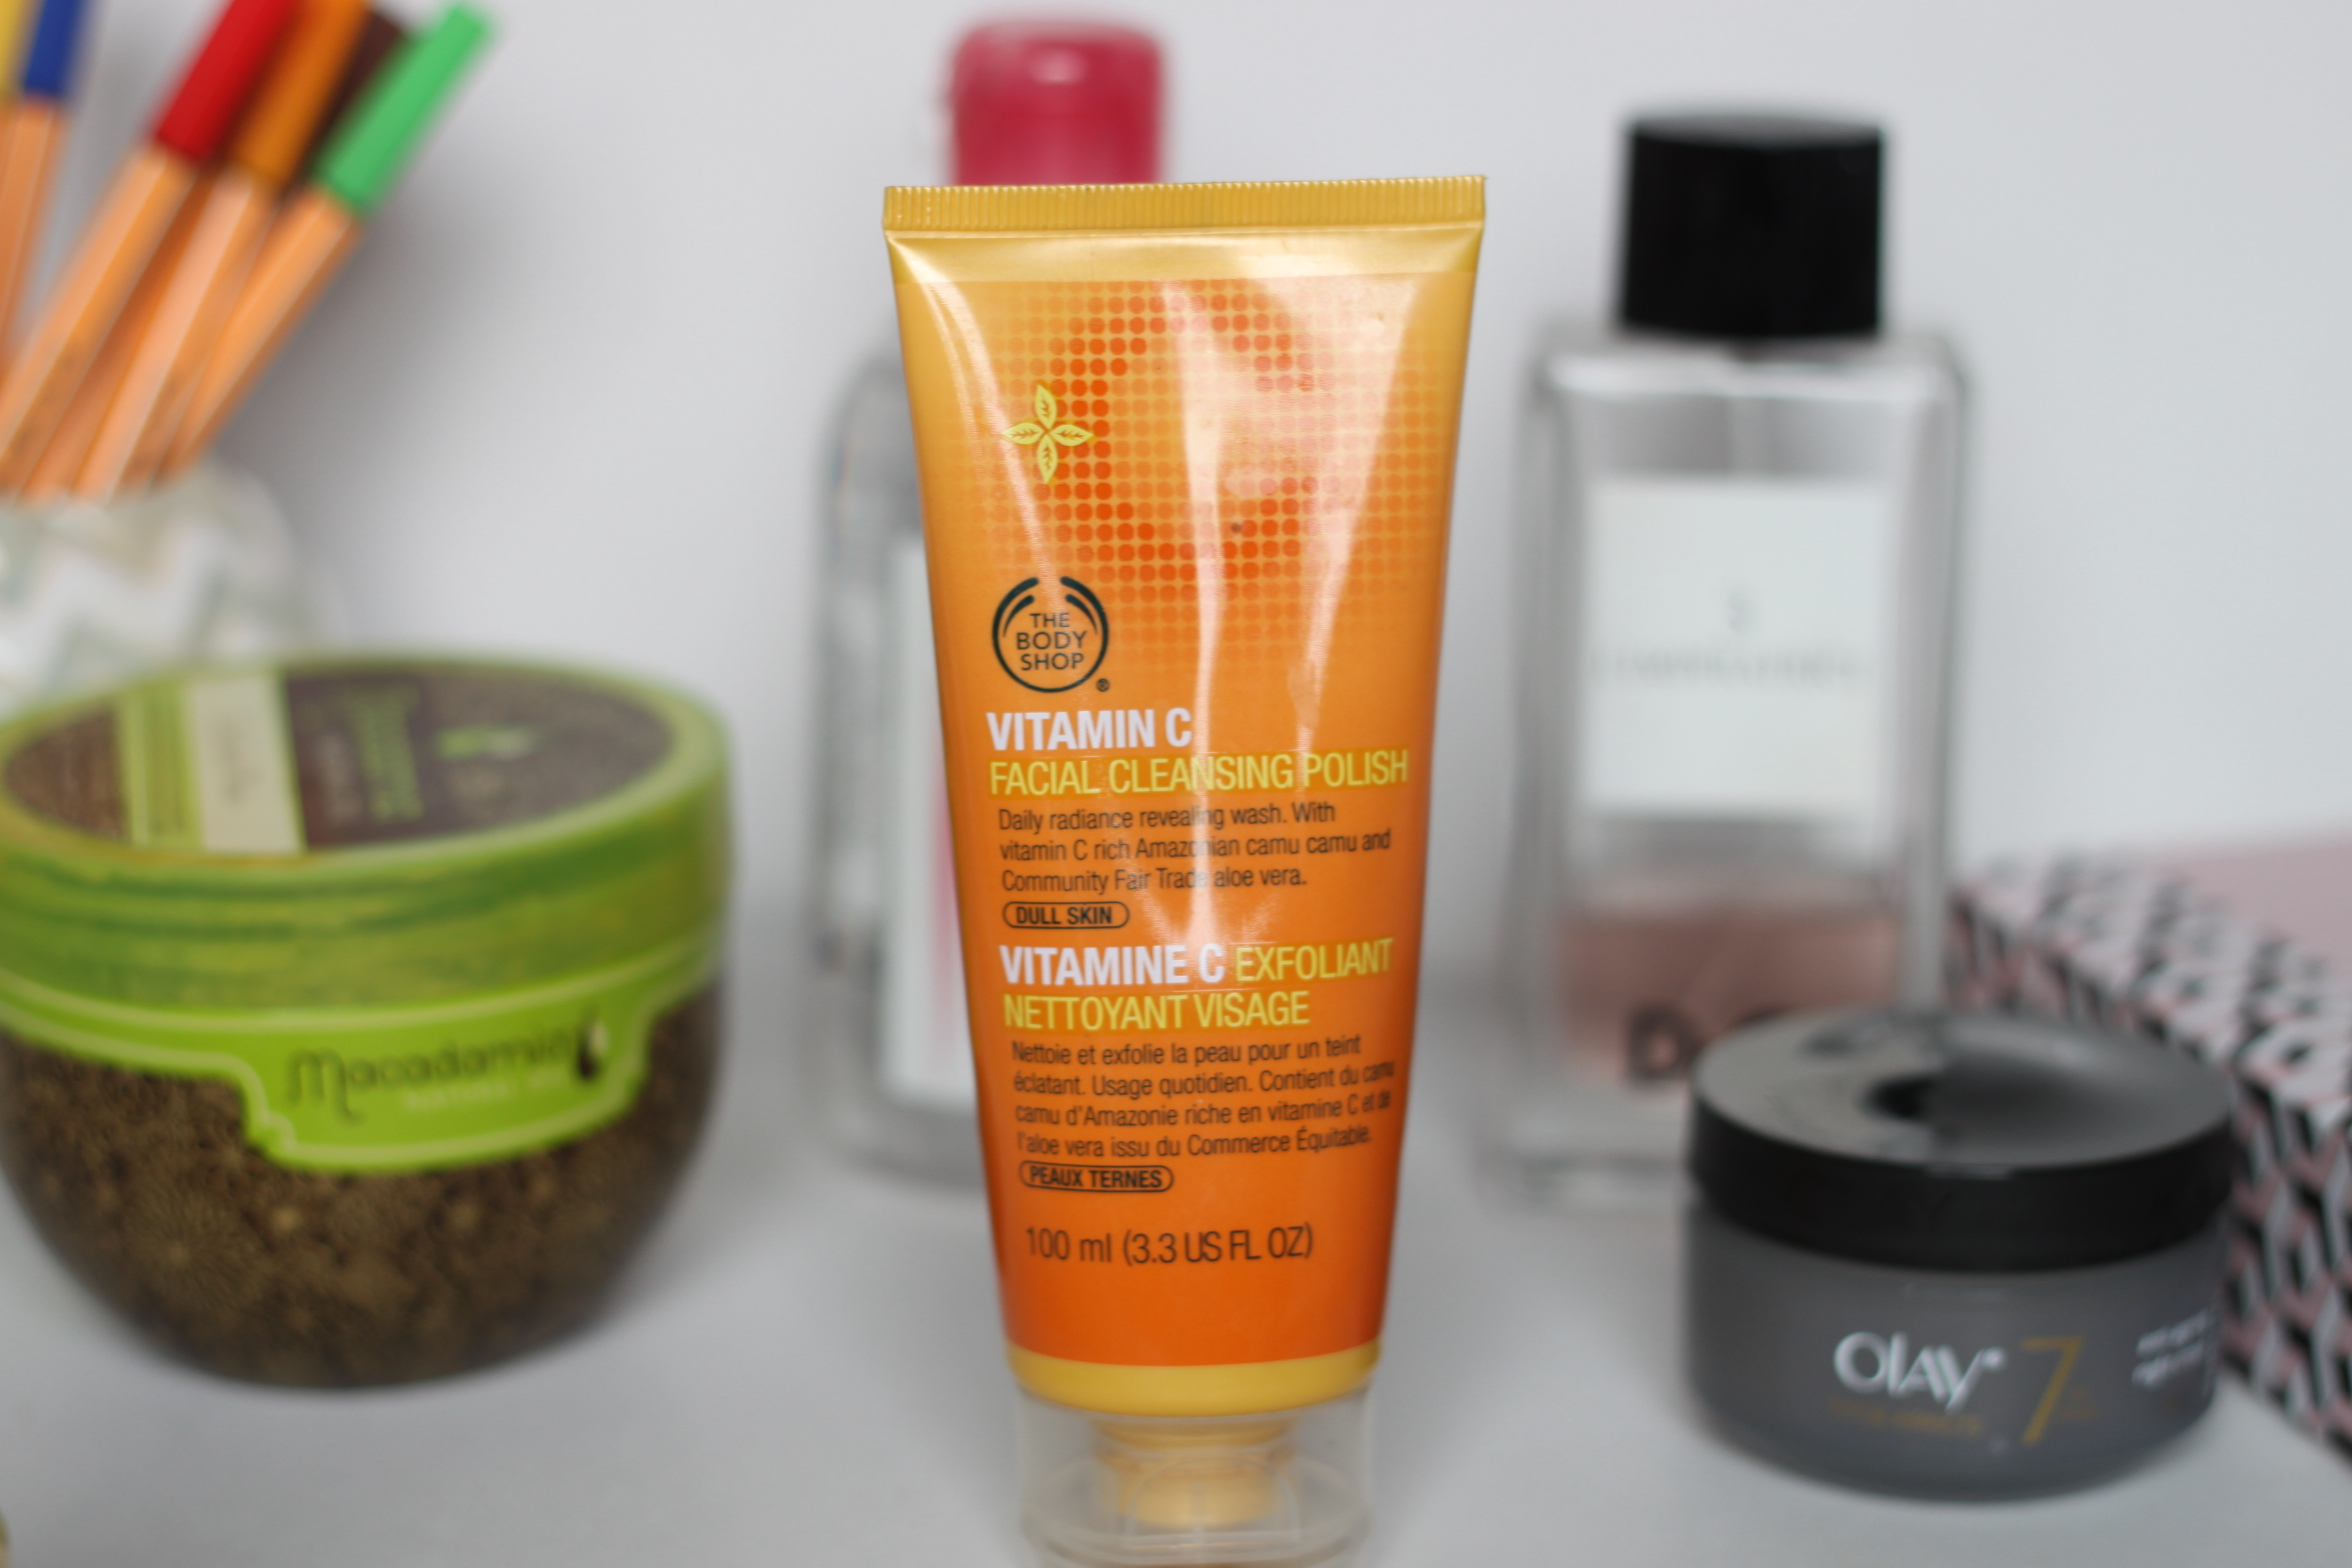 My 2015 Skincare Favorites, the body shop vitamin c facial claansing polish